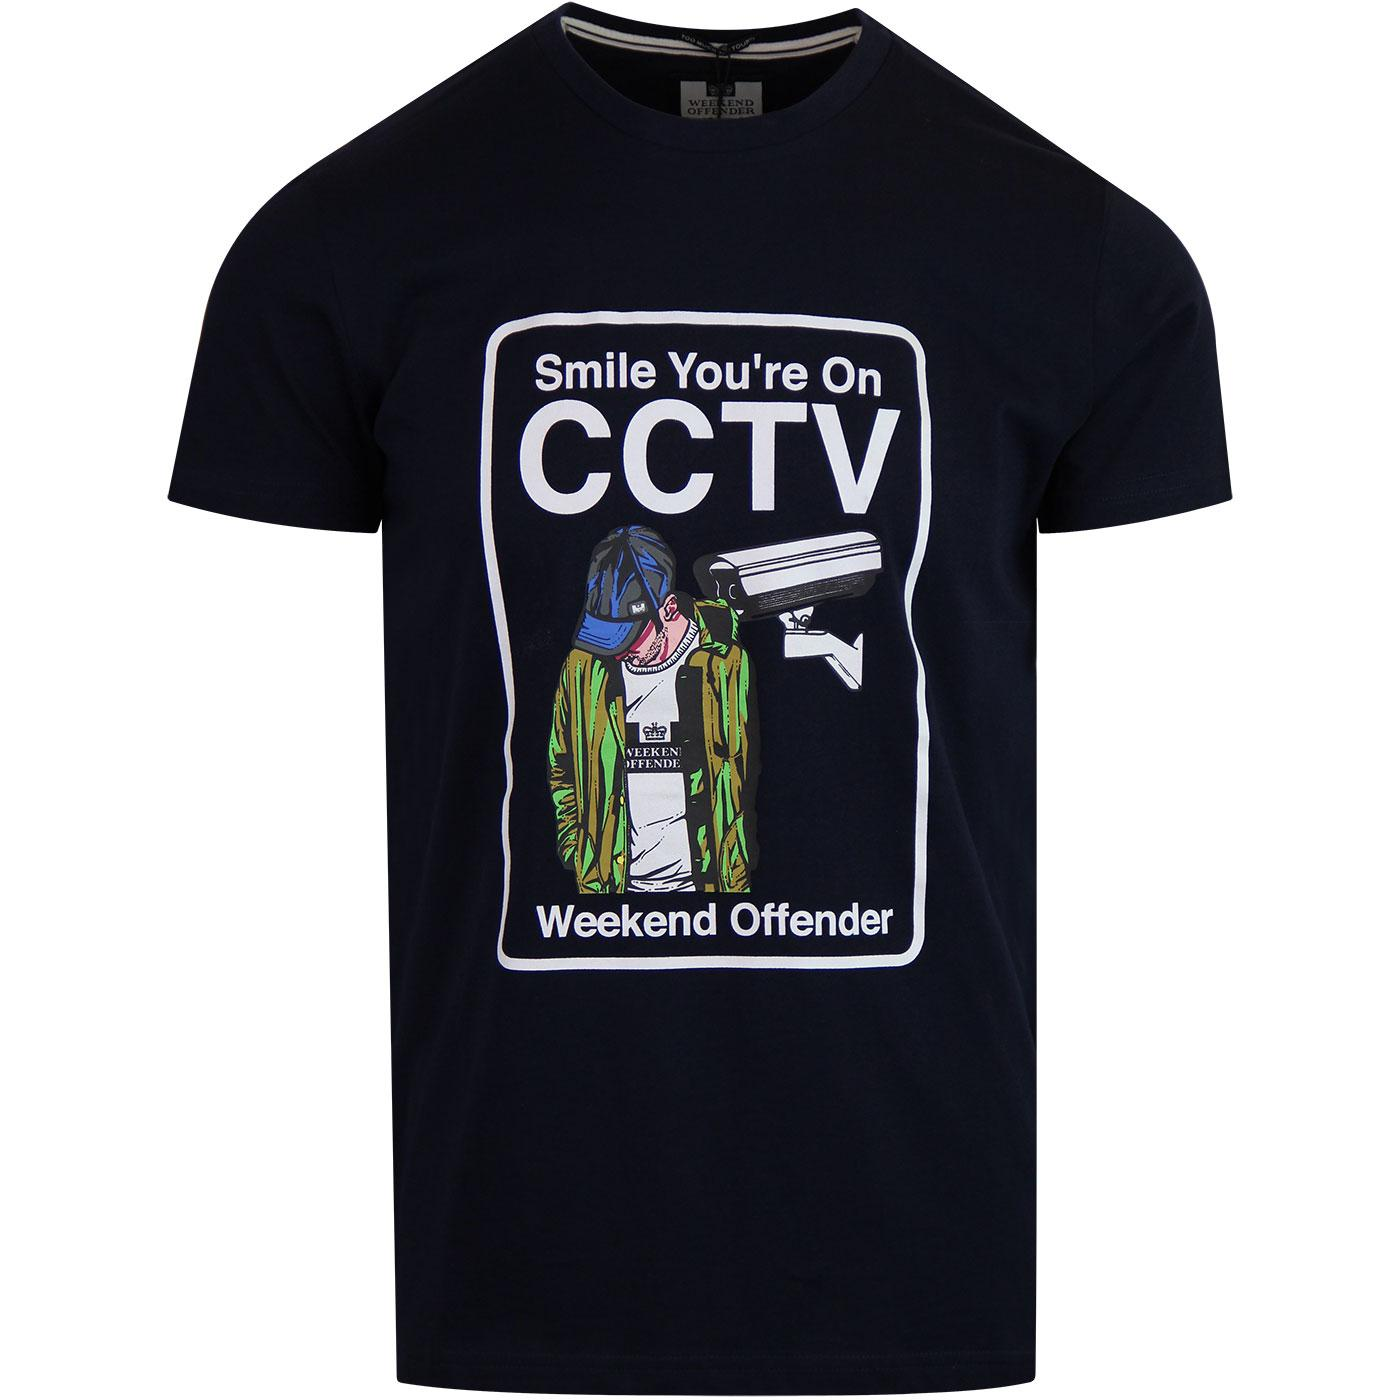 CCTV WEEKEND OFFENDER Men's Graphic Logo Tee